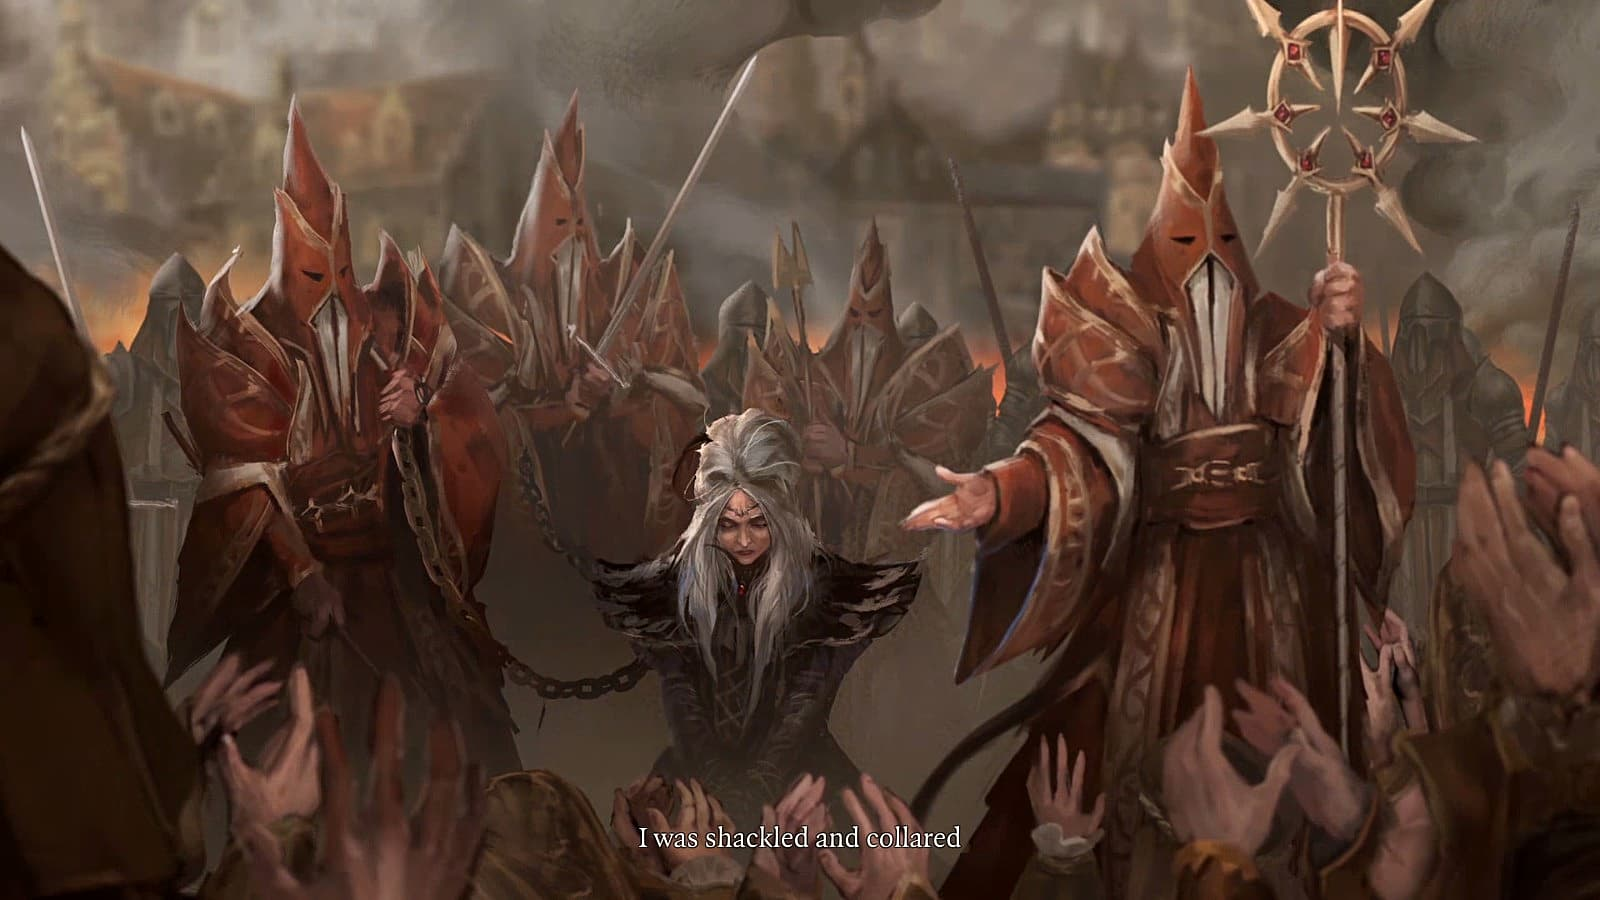 Original Sin Ii Hd Wallpapers - Divinity Original Sin 2 Fane , HD Wallpaper & Backgrounds